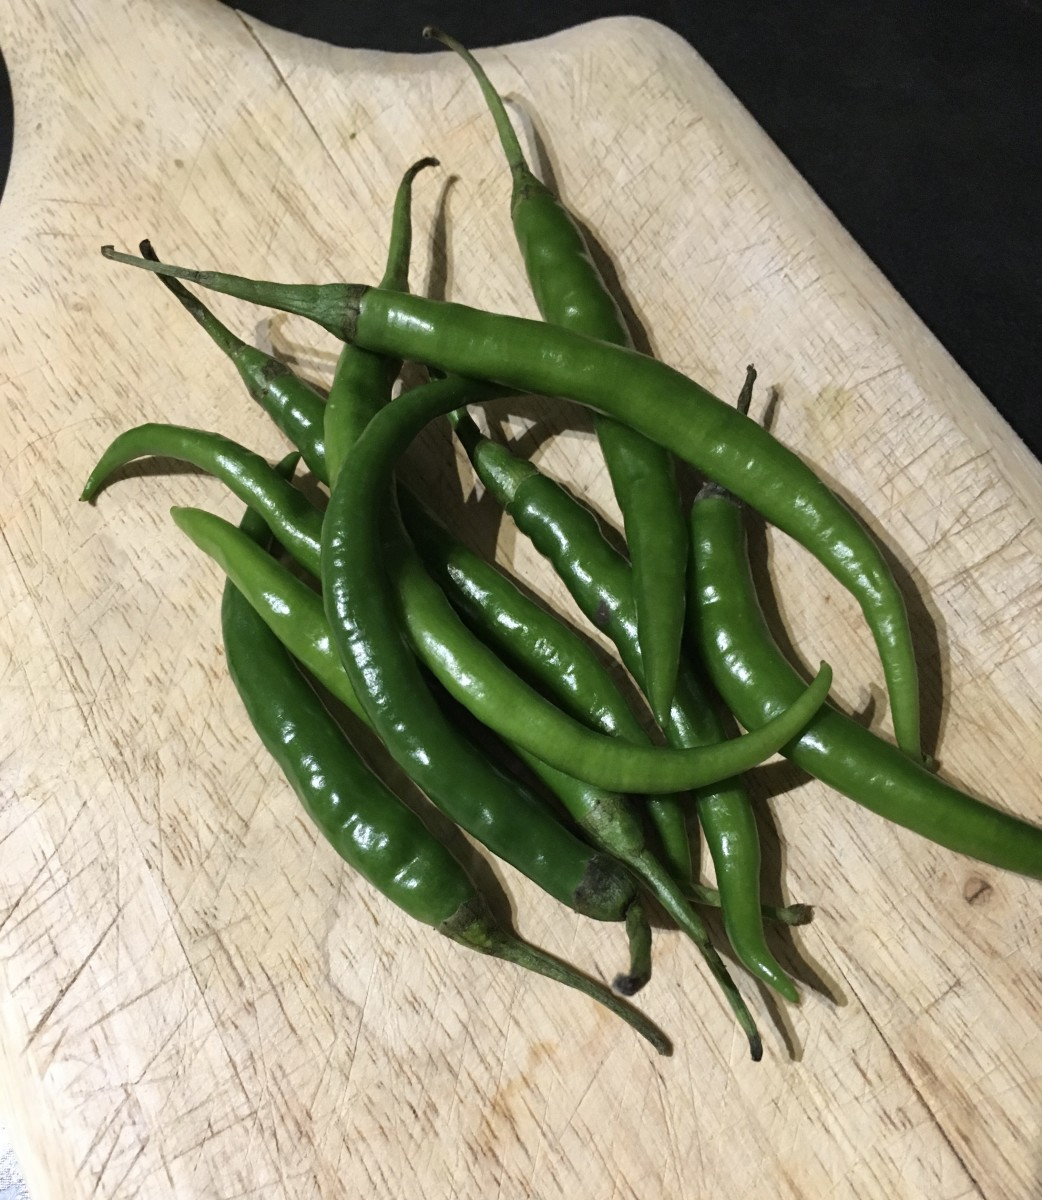 Freeze Chillies to Stop Waste and Save Money